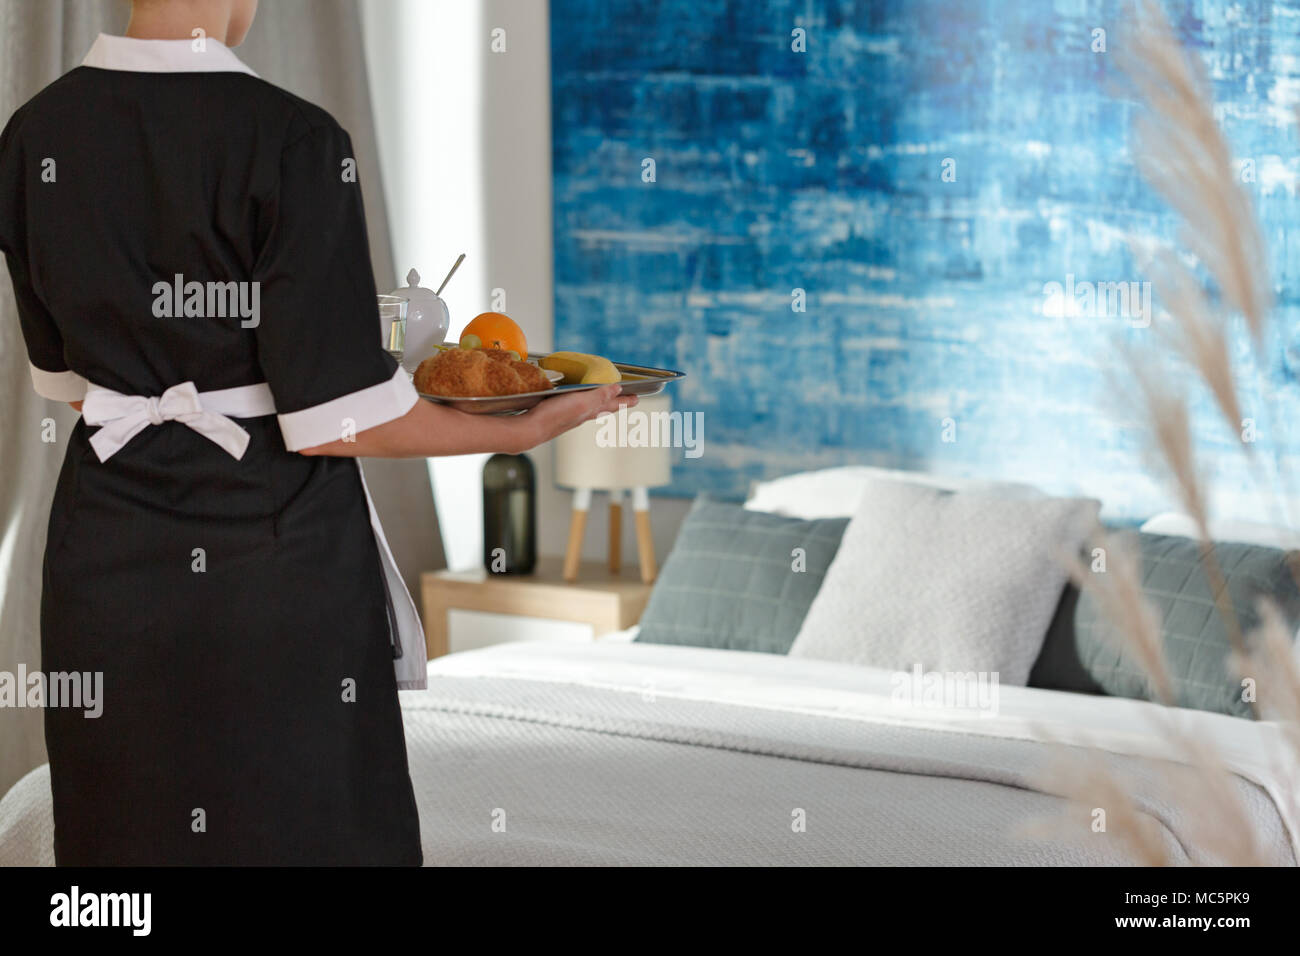 Breakfast delivering service in a modern hotel Stock Photo